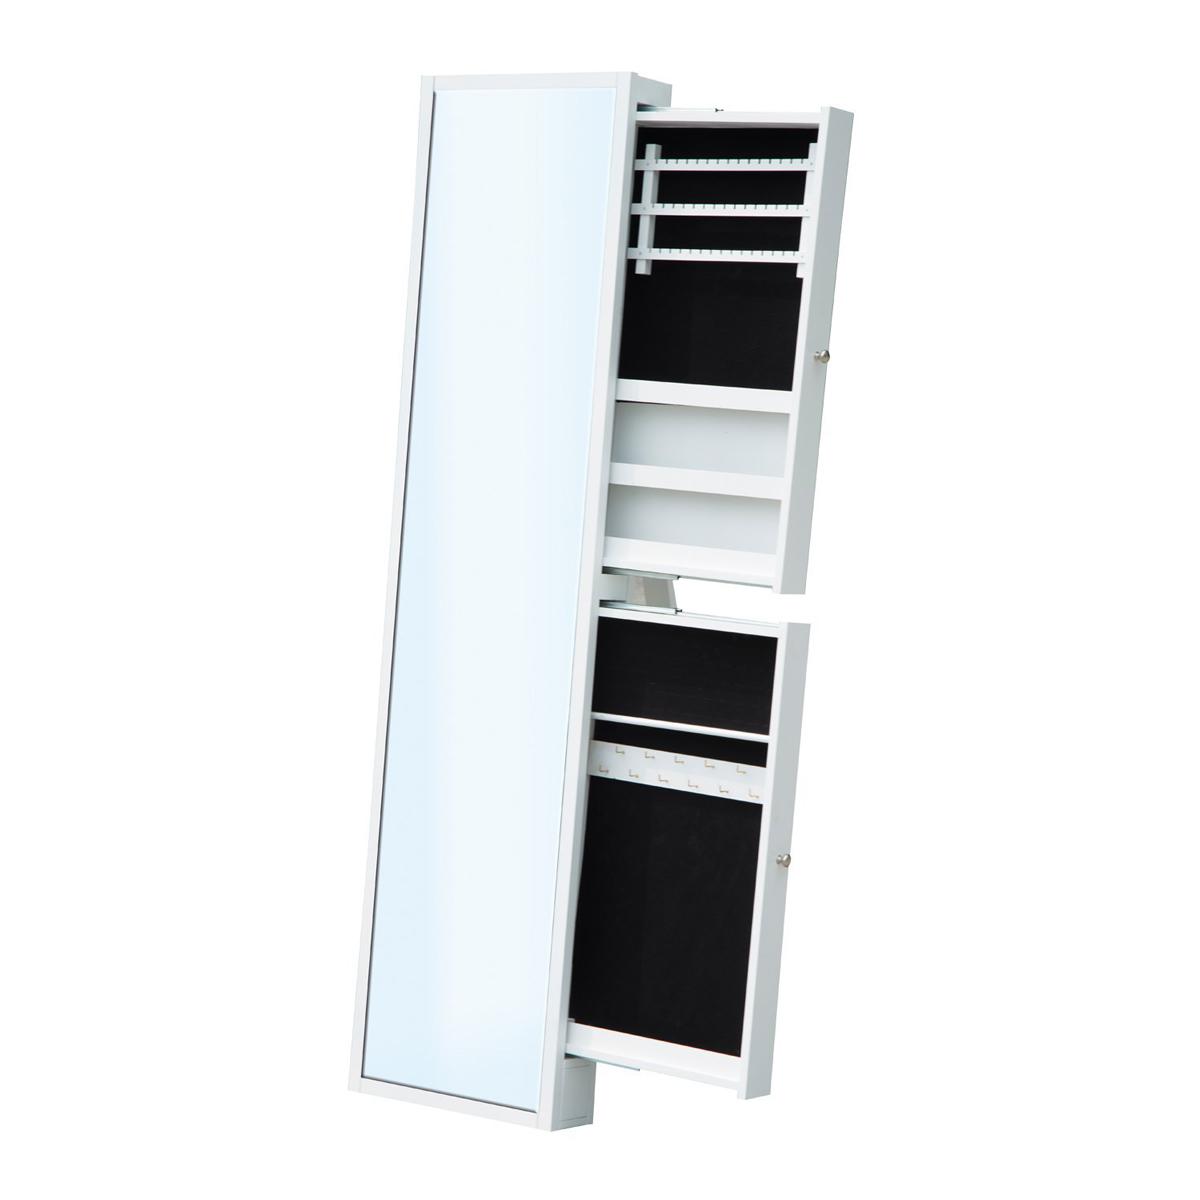 Minimalist White Free Standing Sliding Drawers Mirror Jewelry Armoire